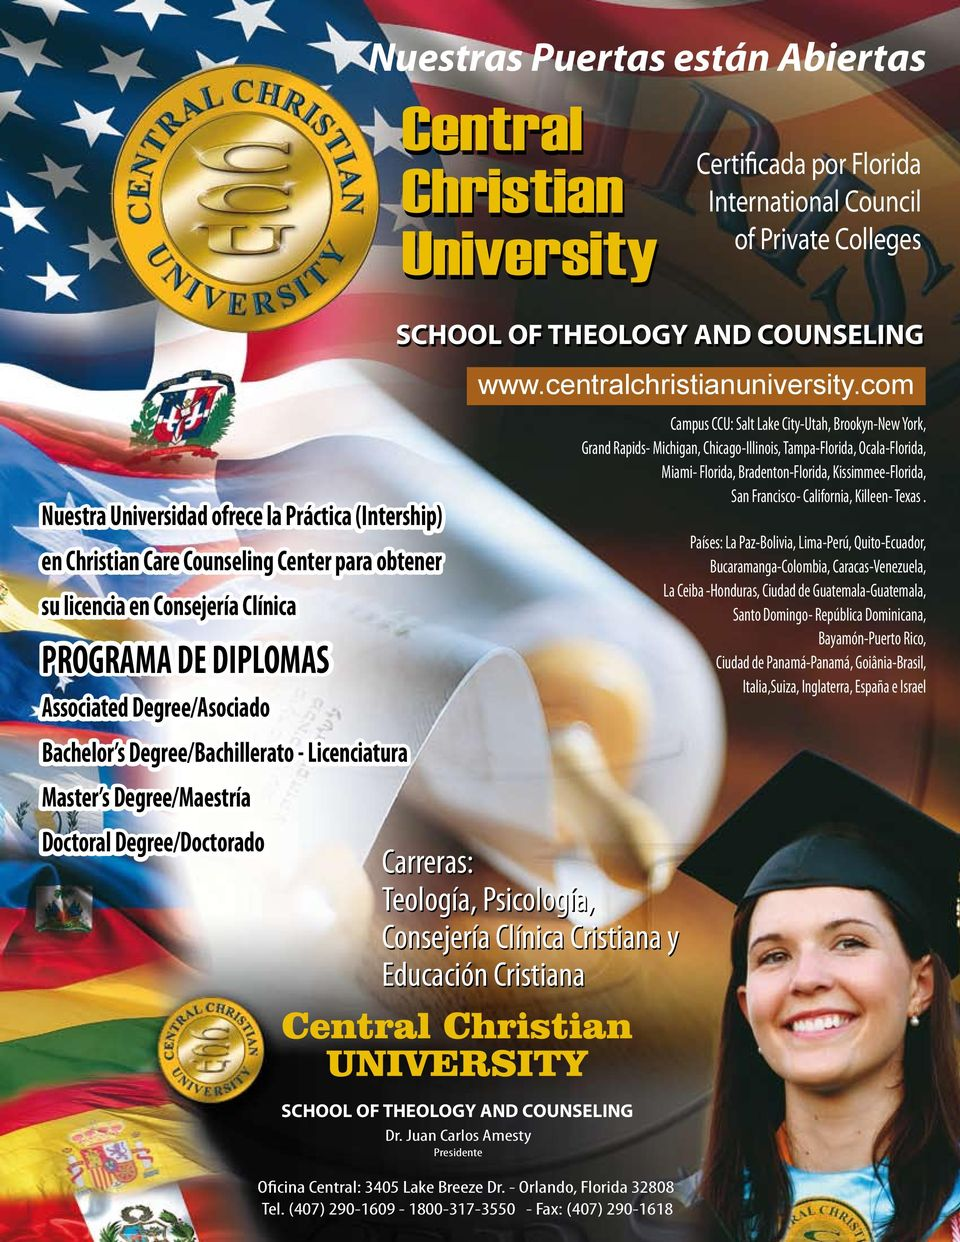 AND COUNSELING www.centralchristianuniversity.